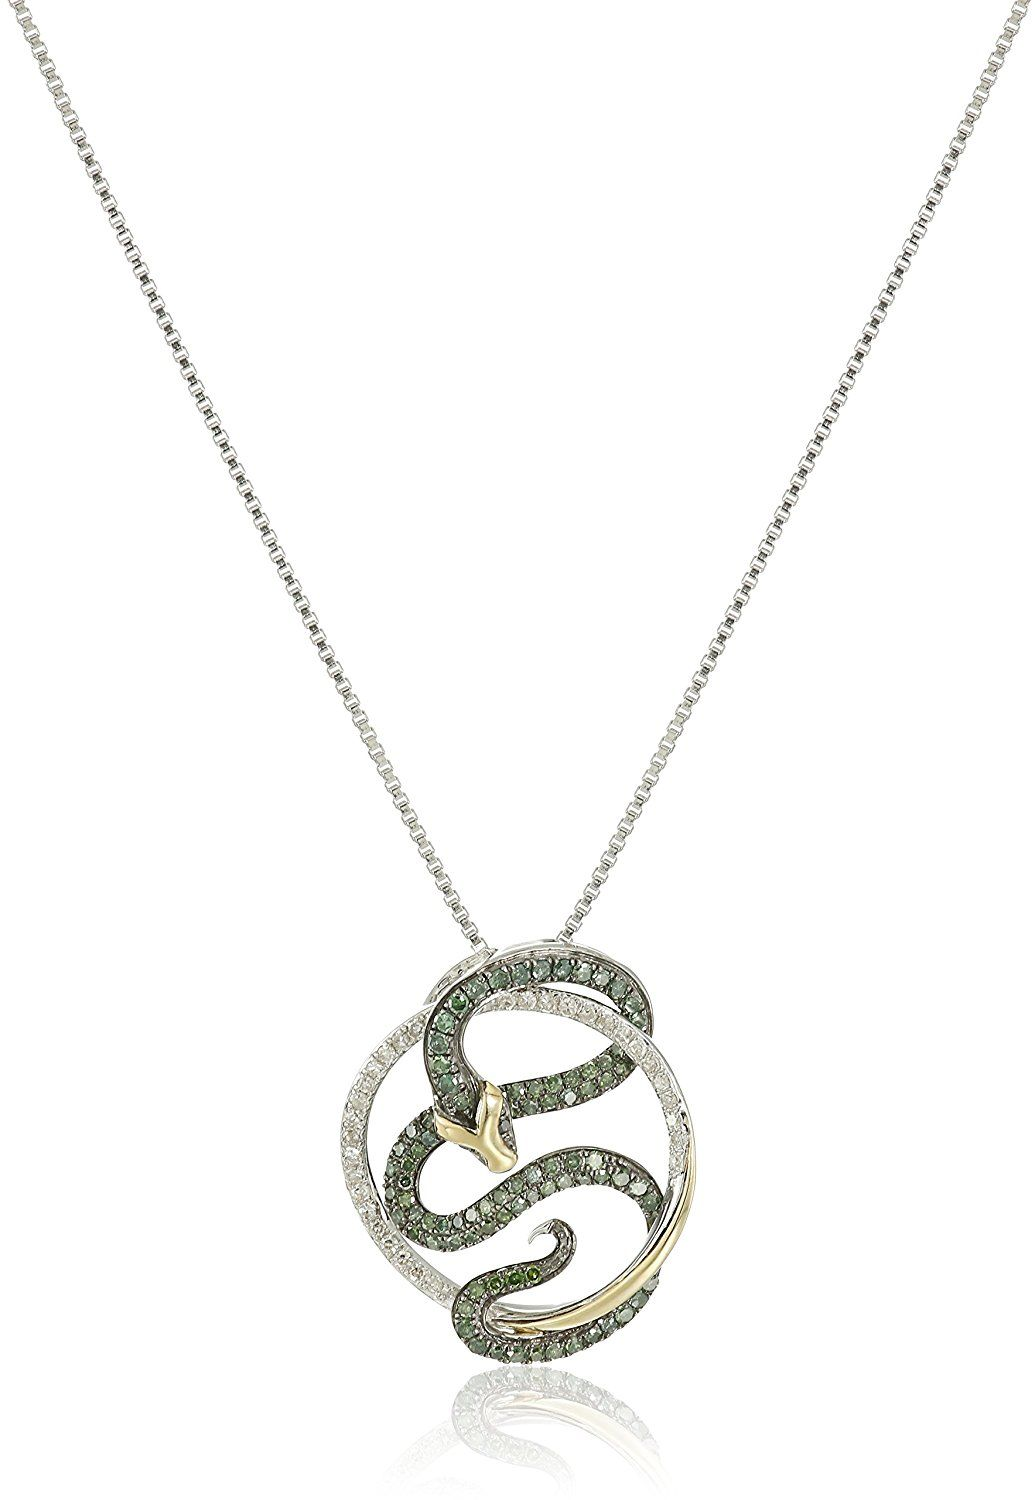 K Yellow Gold Sterling Silver Diamond Snake Pendant Necklace